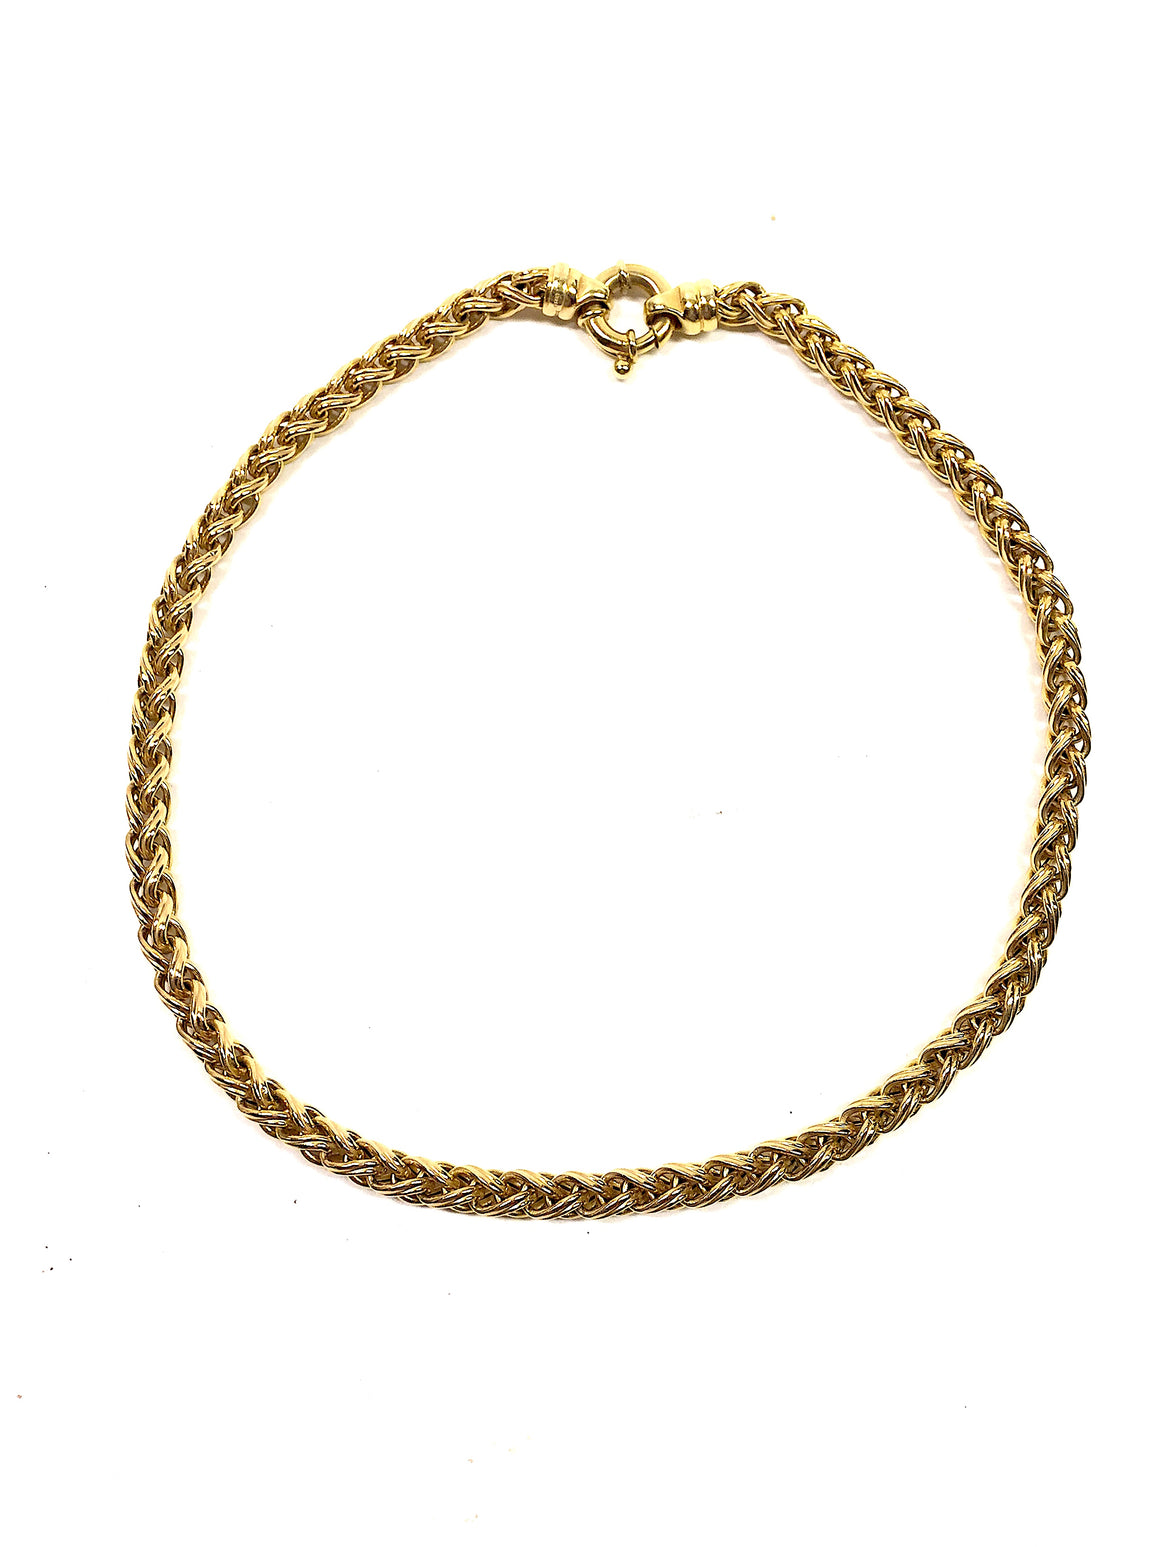 14K YELLOW GOLD WHEAT CHAIN LINK NECKLACE